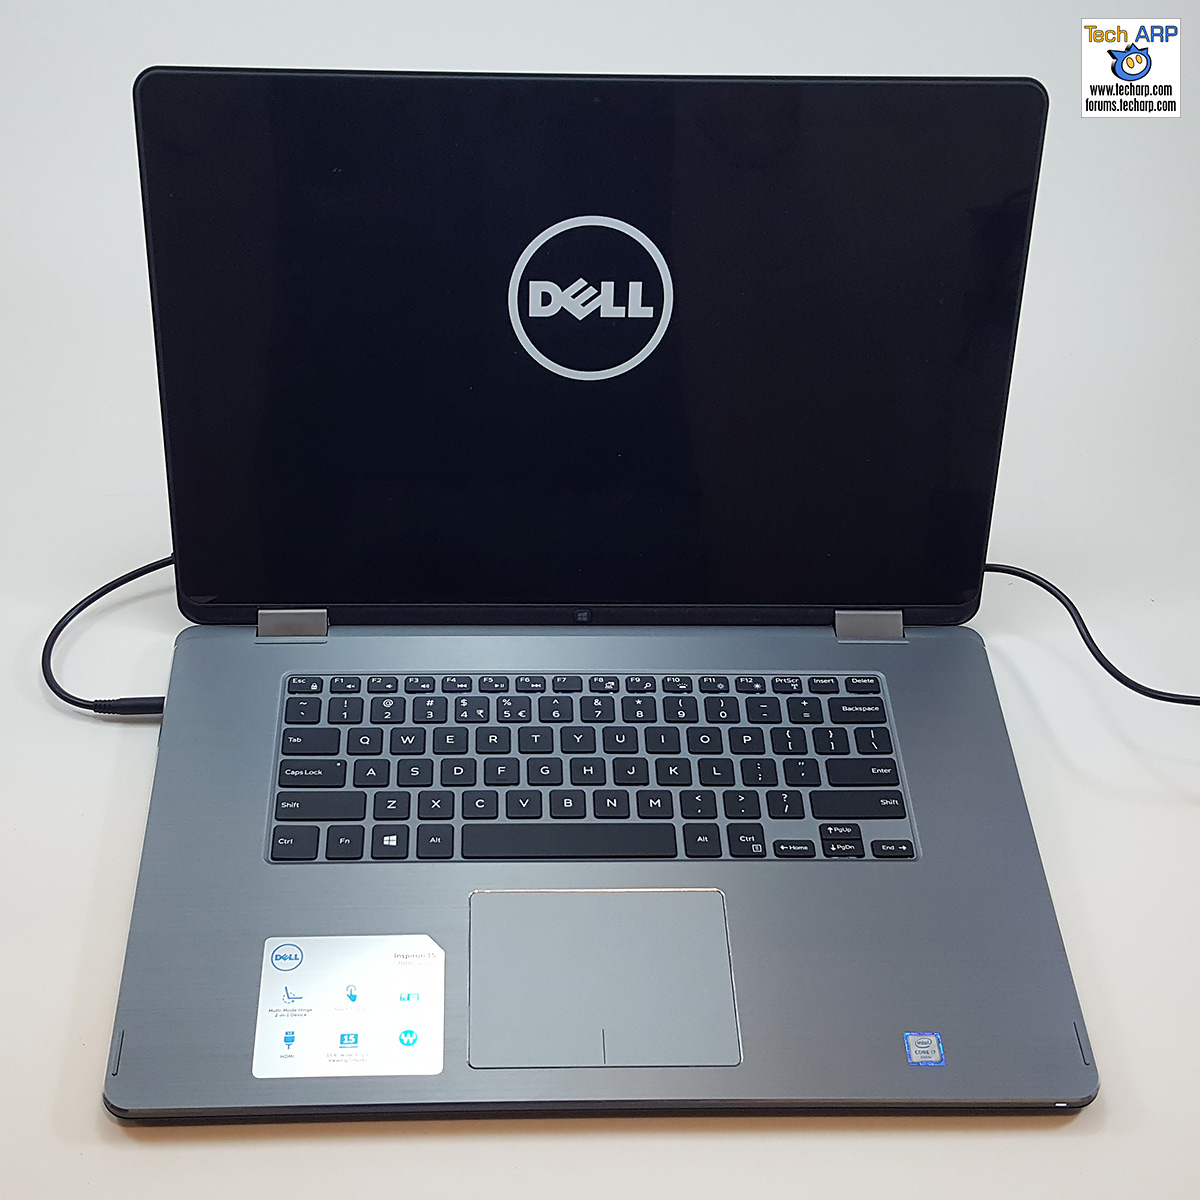 Dell Inspiron 15 7000 (7568) 2-in-1 Laptop Review - Tech ARP